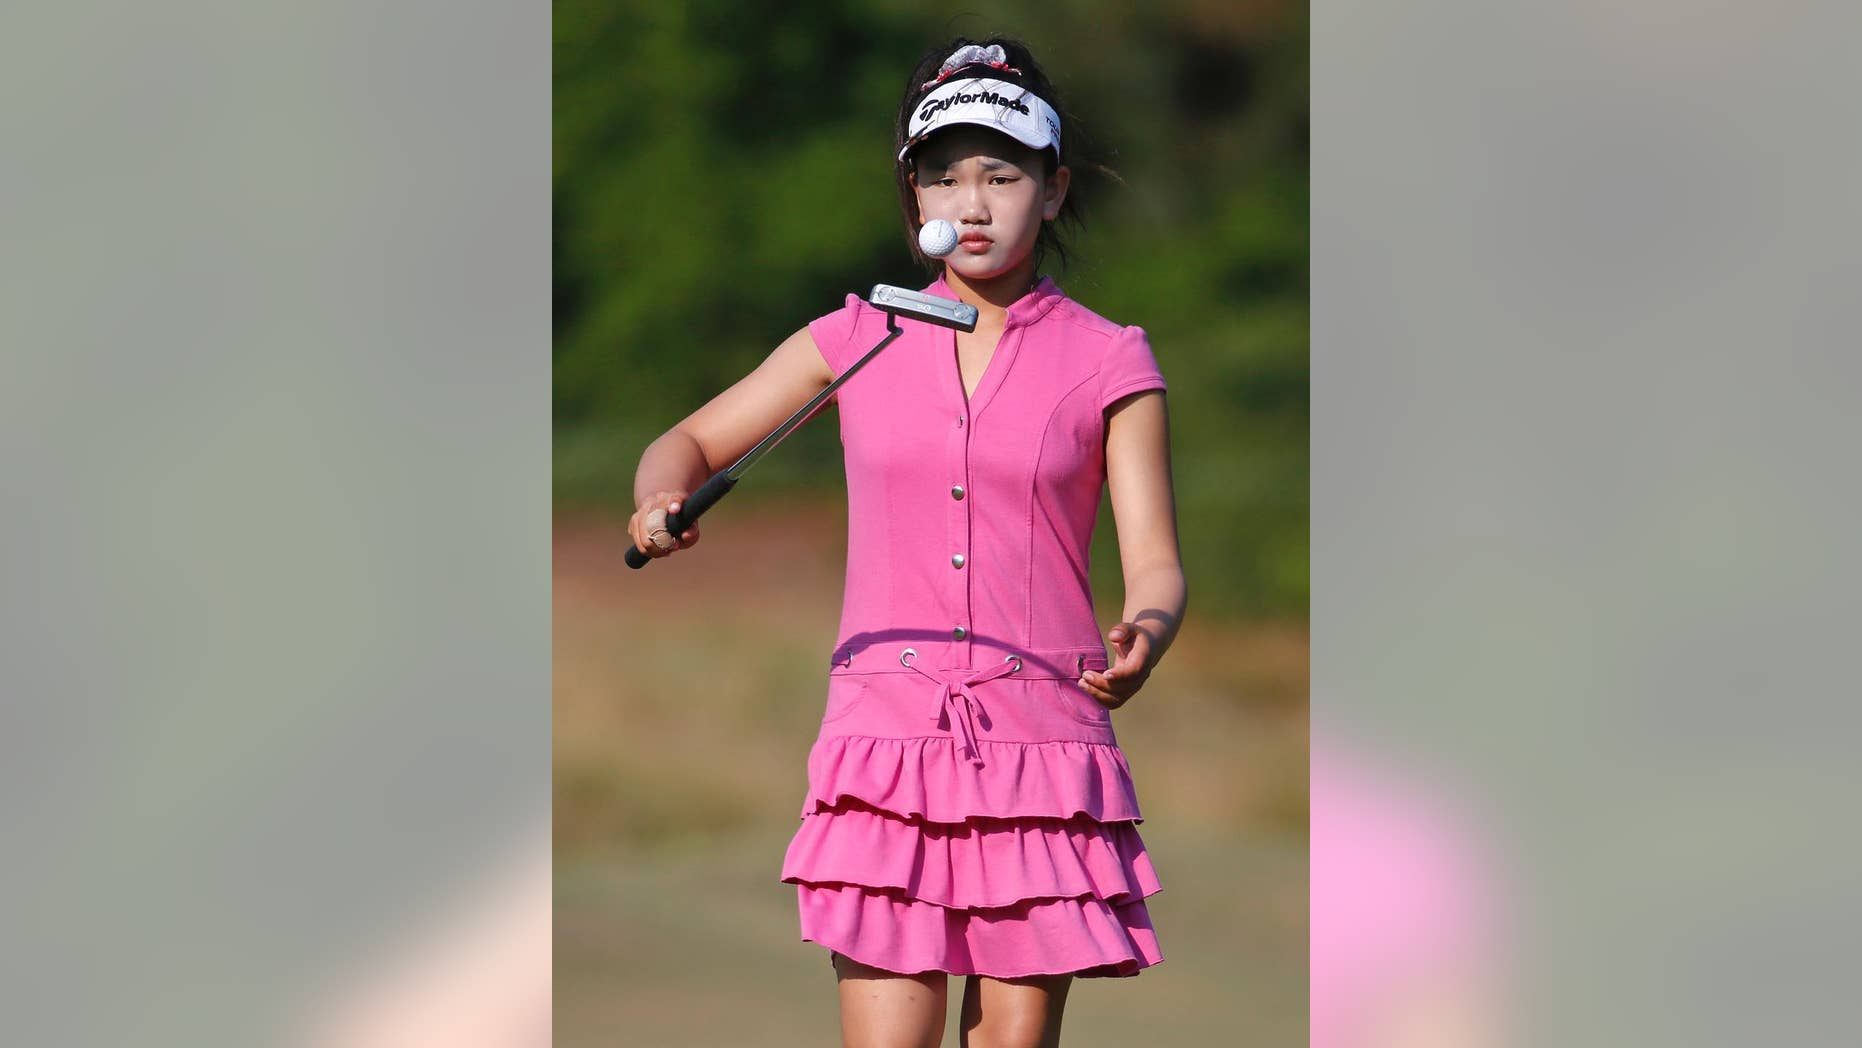 Lucy Li bounces the ball off of her putter on the second green during a practice round for the U.S. Women's Open golf tournament in Pinehurst, N.C., Wednesday, June 18, 2014. The sixth-grader from California is the youngest qualifier in the history of the U.S. Women's Open. (AP Photo/John Bazemore)